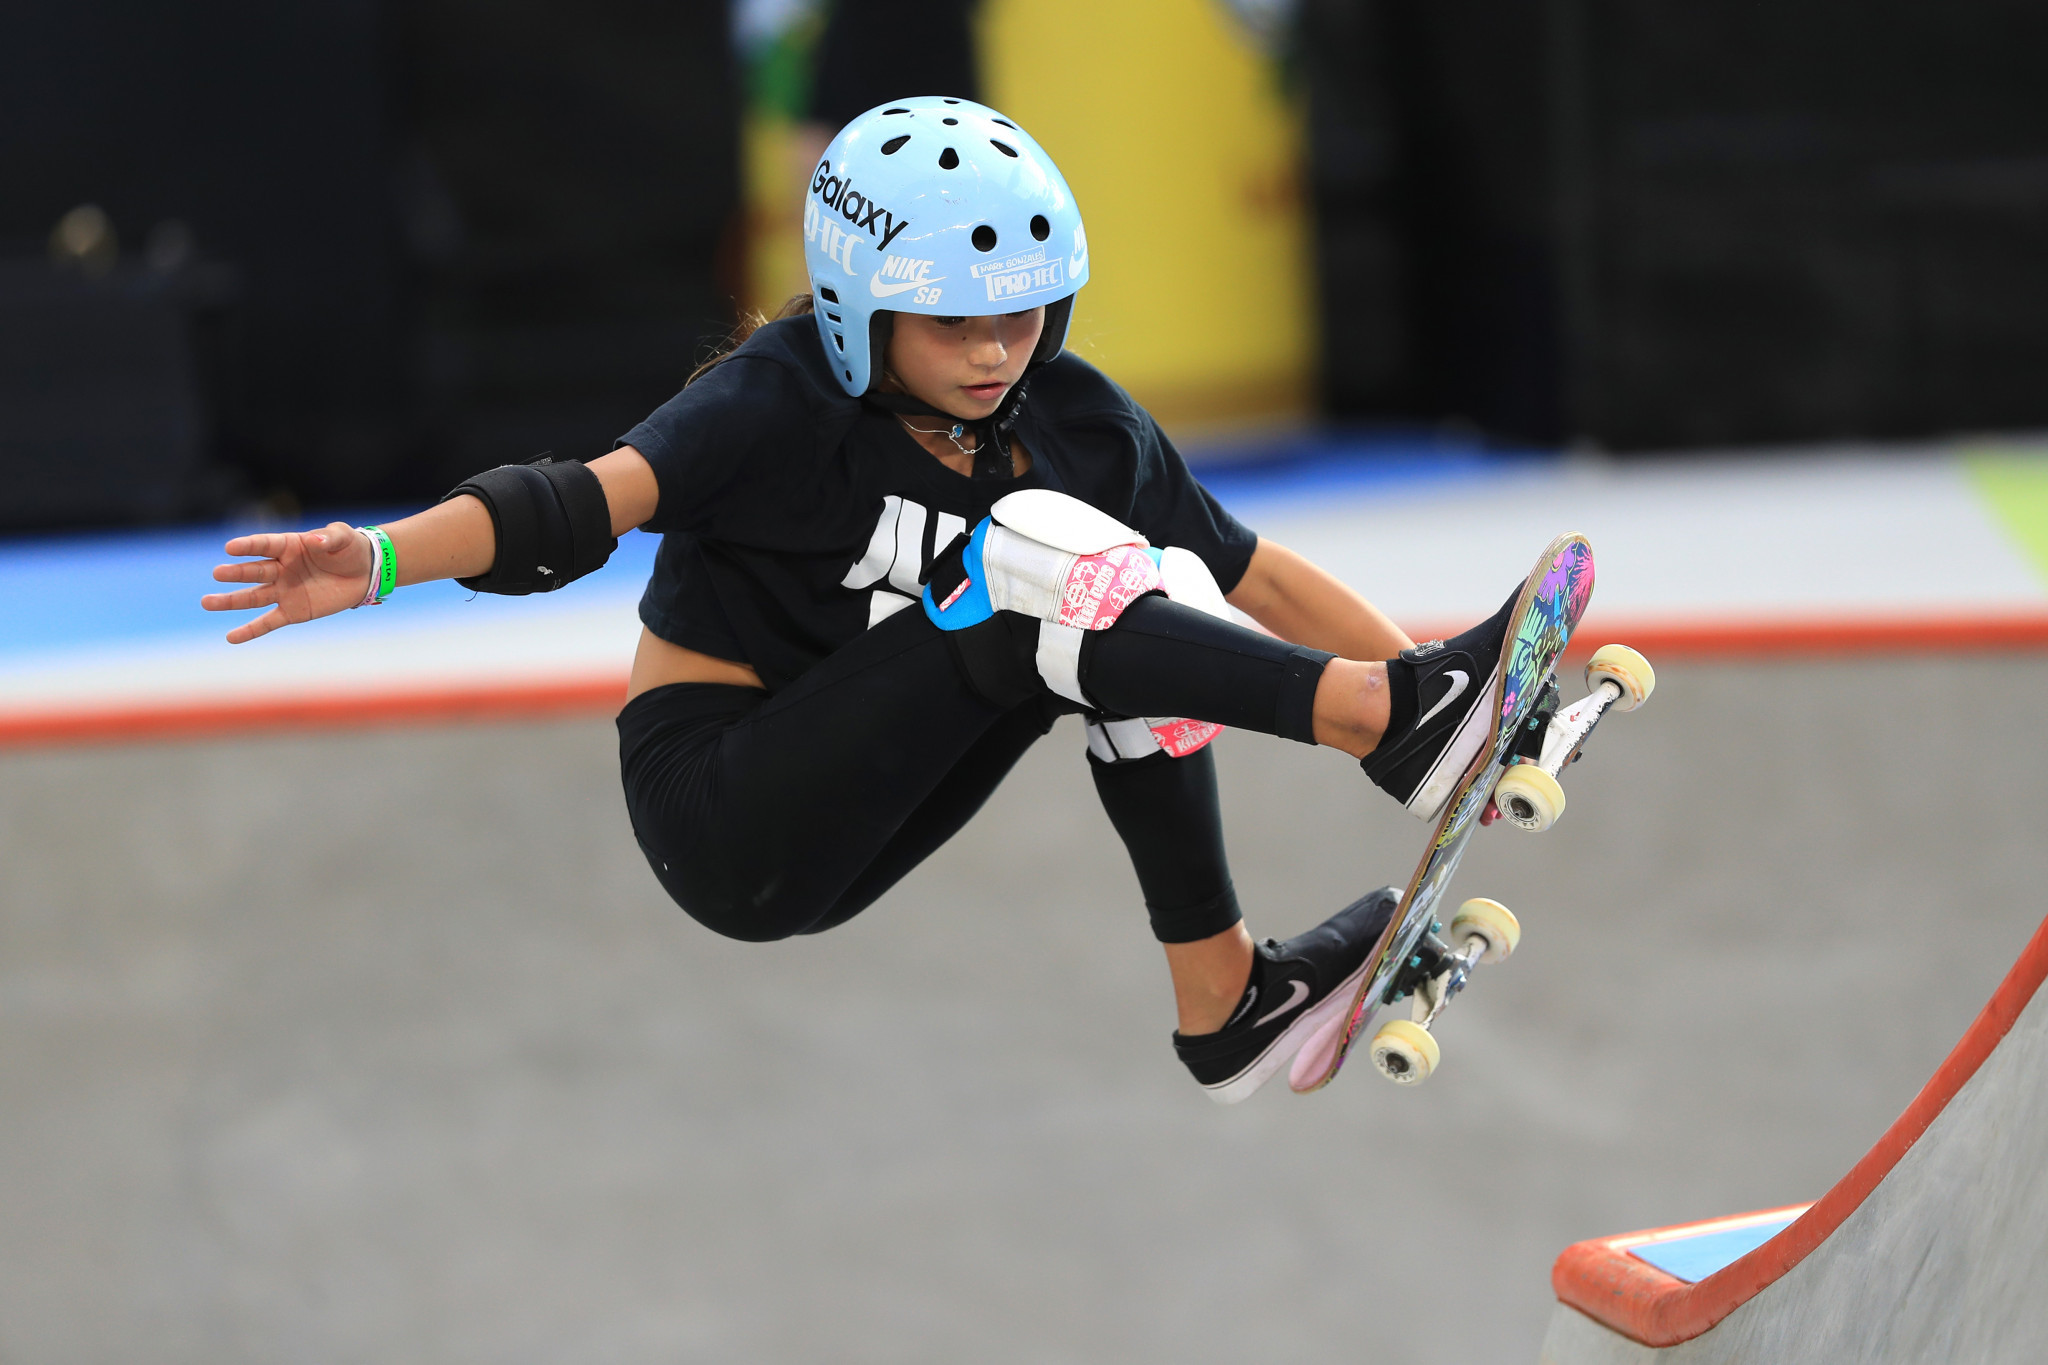 """Britain's 11-year-old skateboarder shared news of accident to show """"that it's okay to fall"""""""